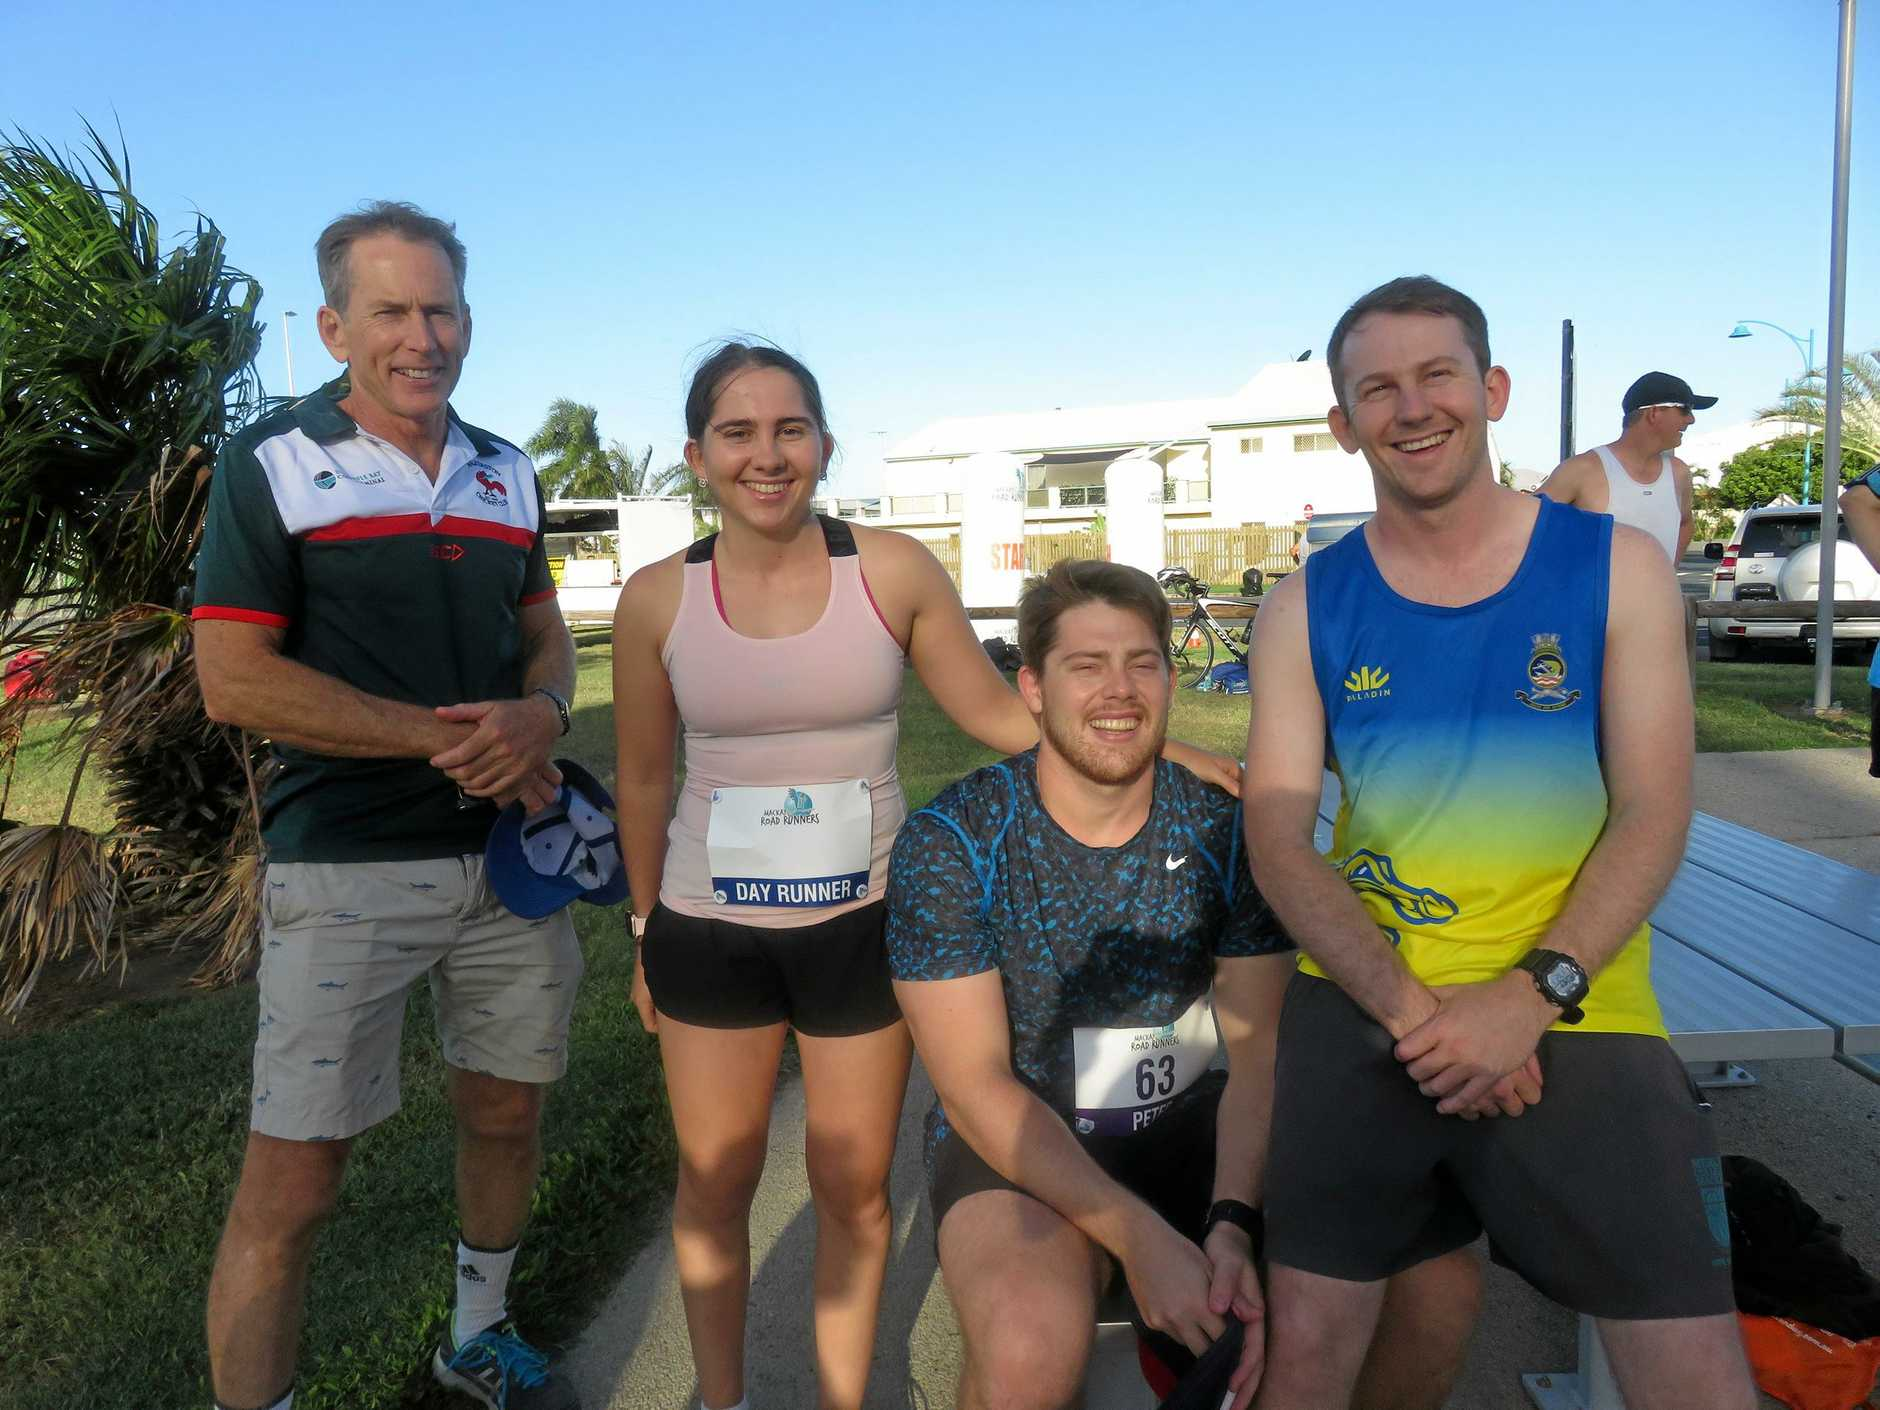 Mackay Road Runners captain Jim Ford (left) celebrates a birthday with his family - Anthea Ford, Peter Ford and Alex Ford.